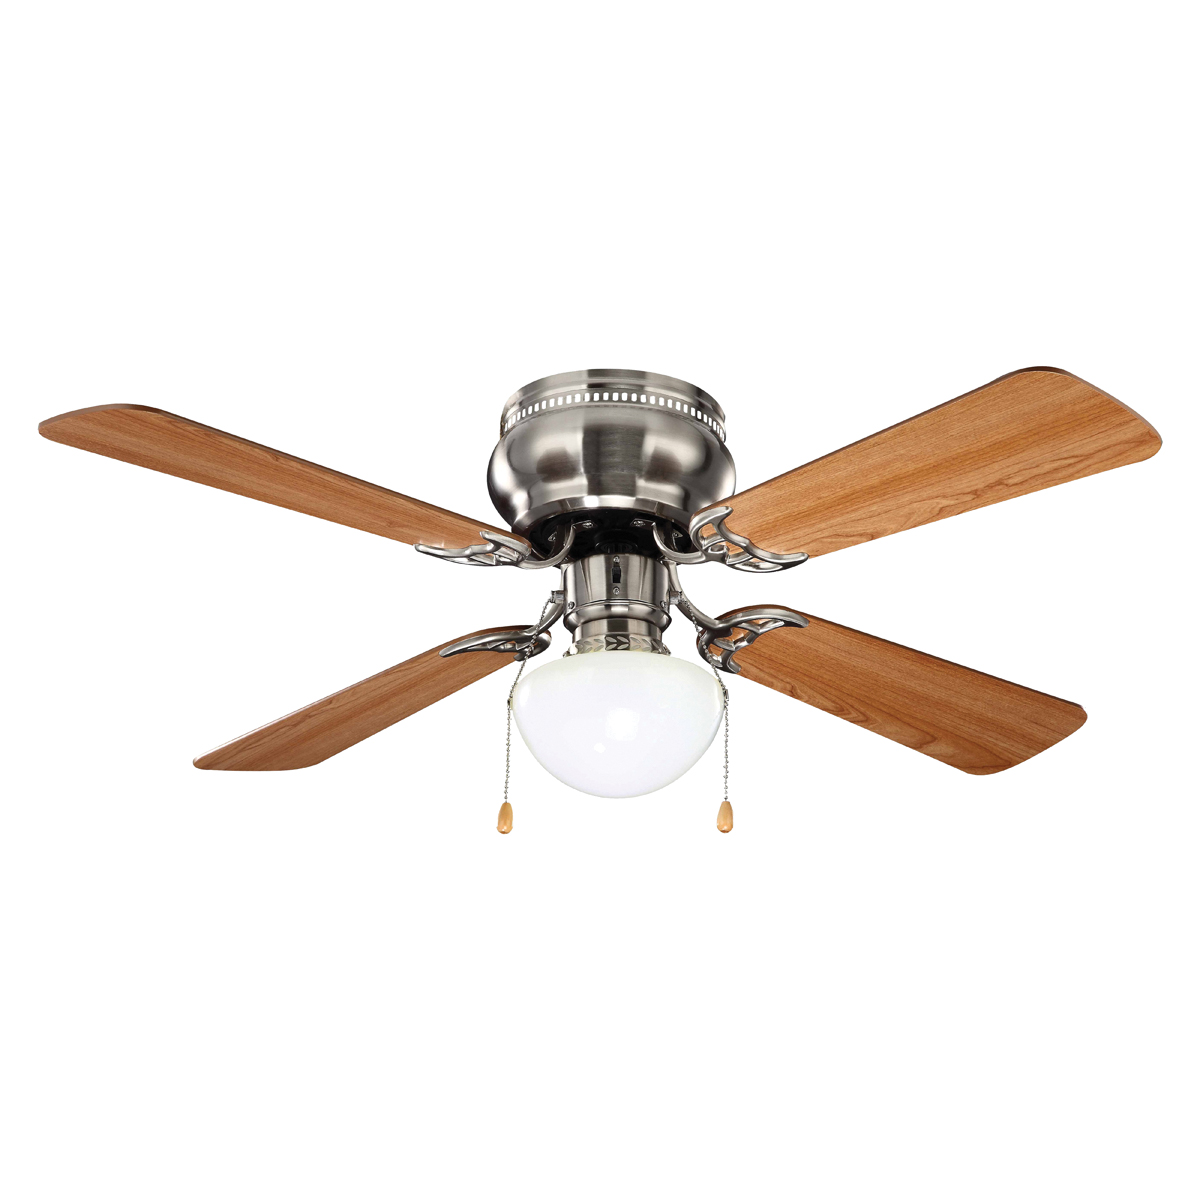 Picture of Boston Harbor 42-742T-MR-EN-BN Ceiling Fan, 0.5 A, 120 V, 4-Blade, 42 in Sweep, 1924 cfm Air